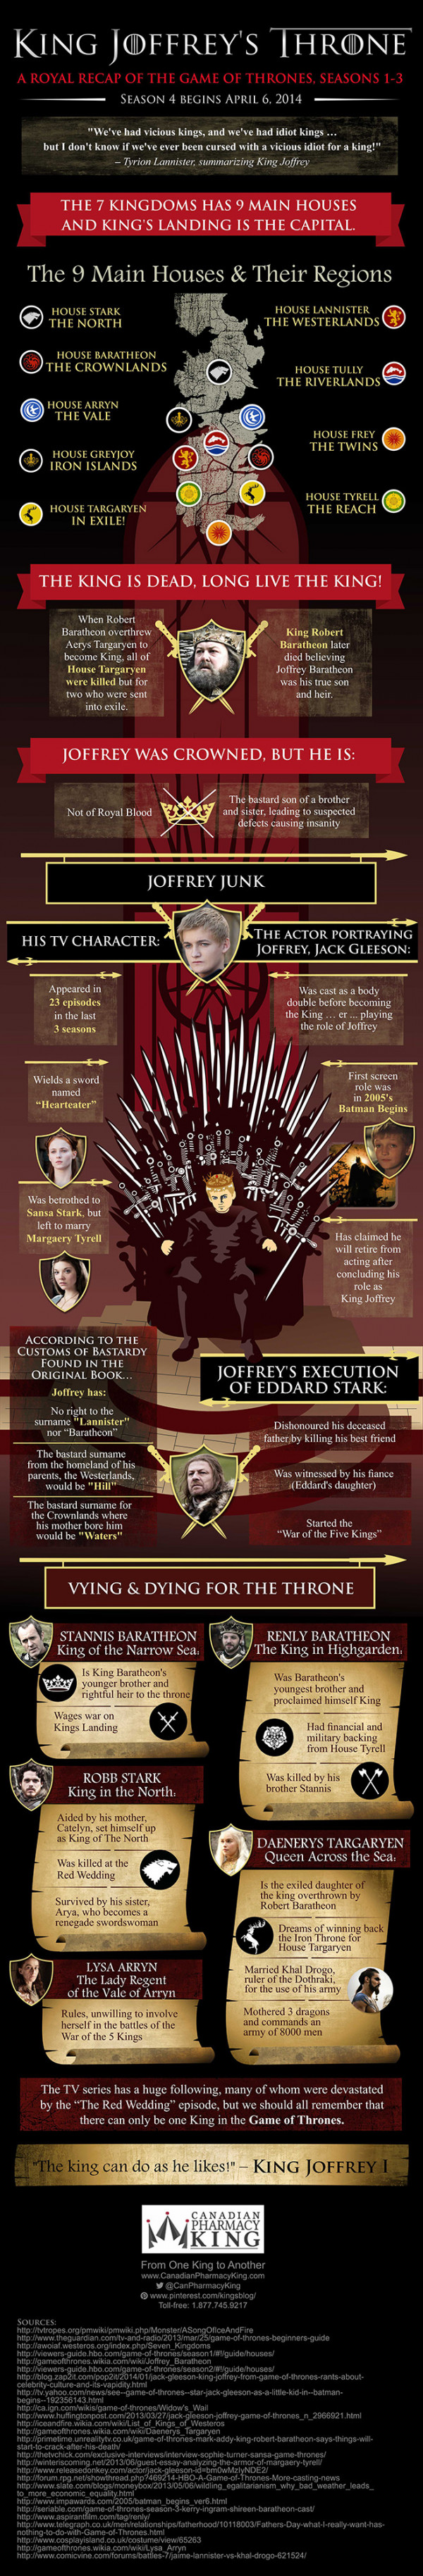 King Joffrey�s Throne - A Royal Recap of The Game of Thrones